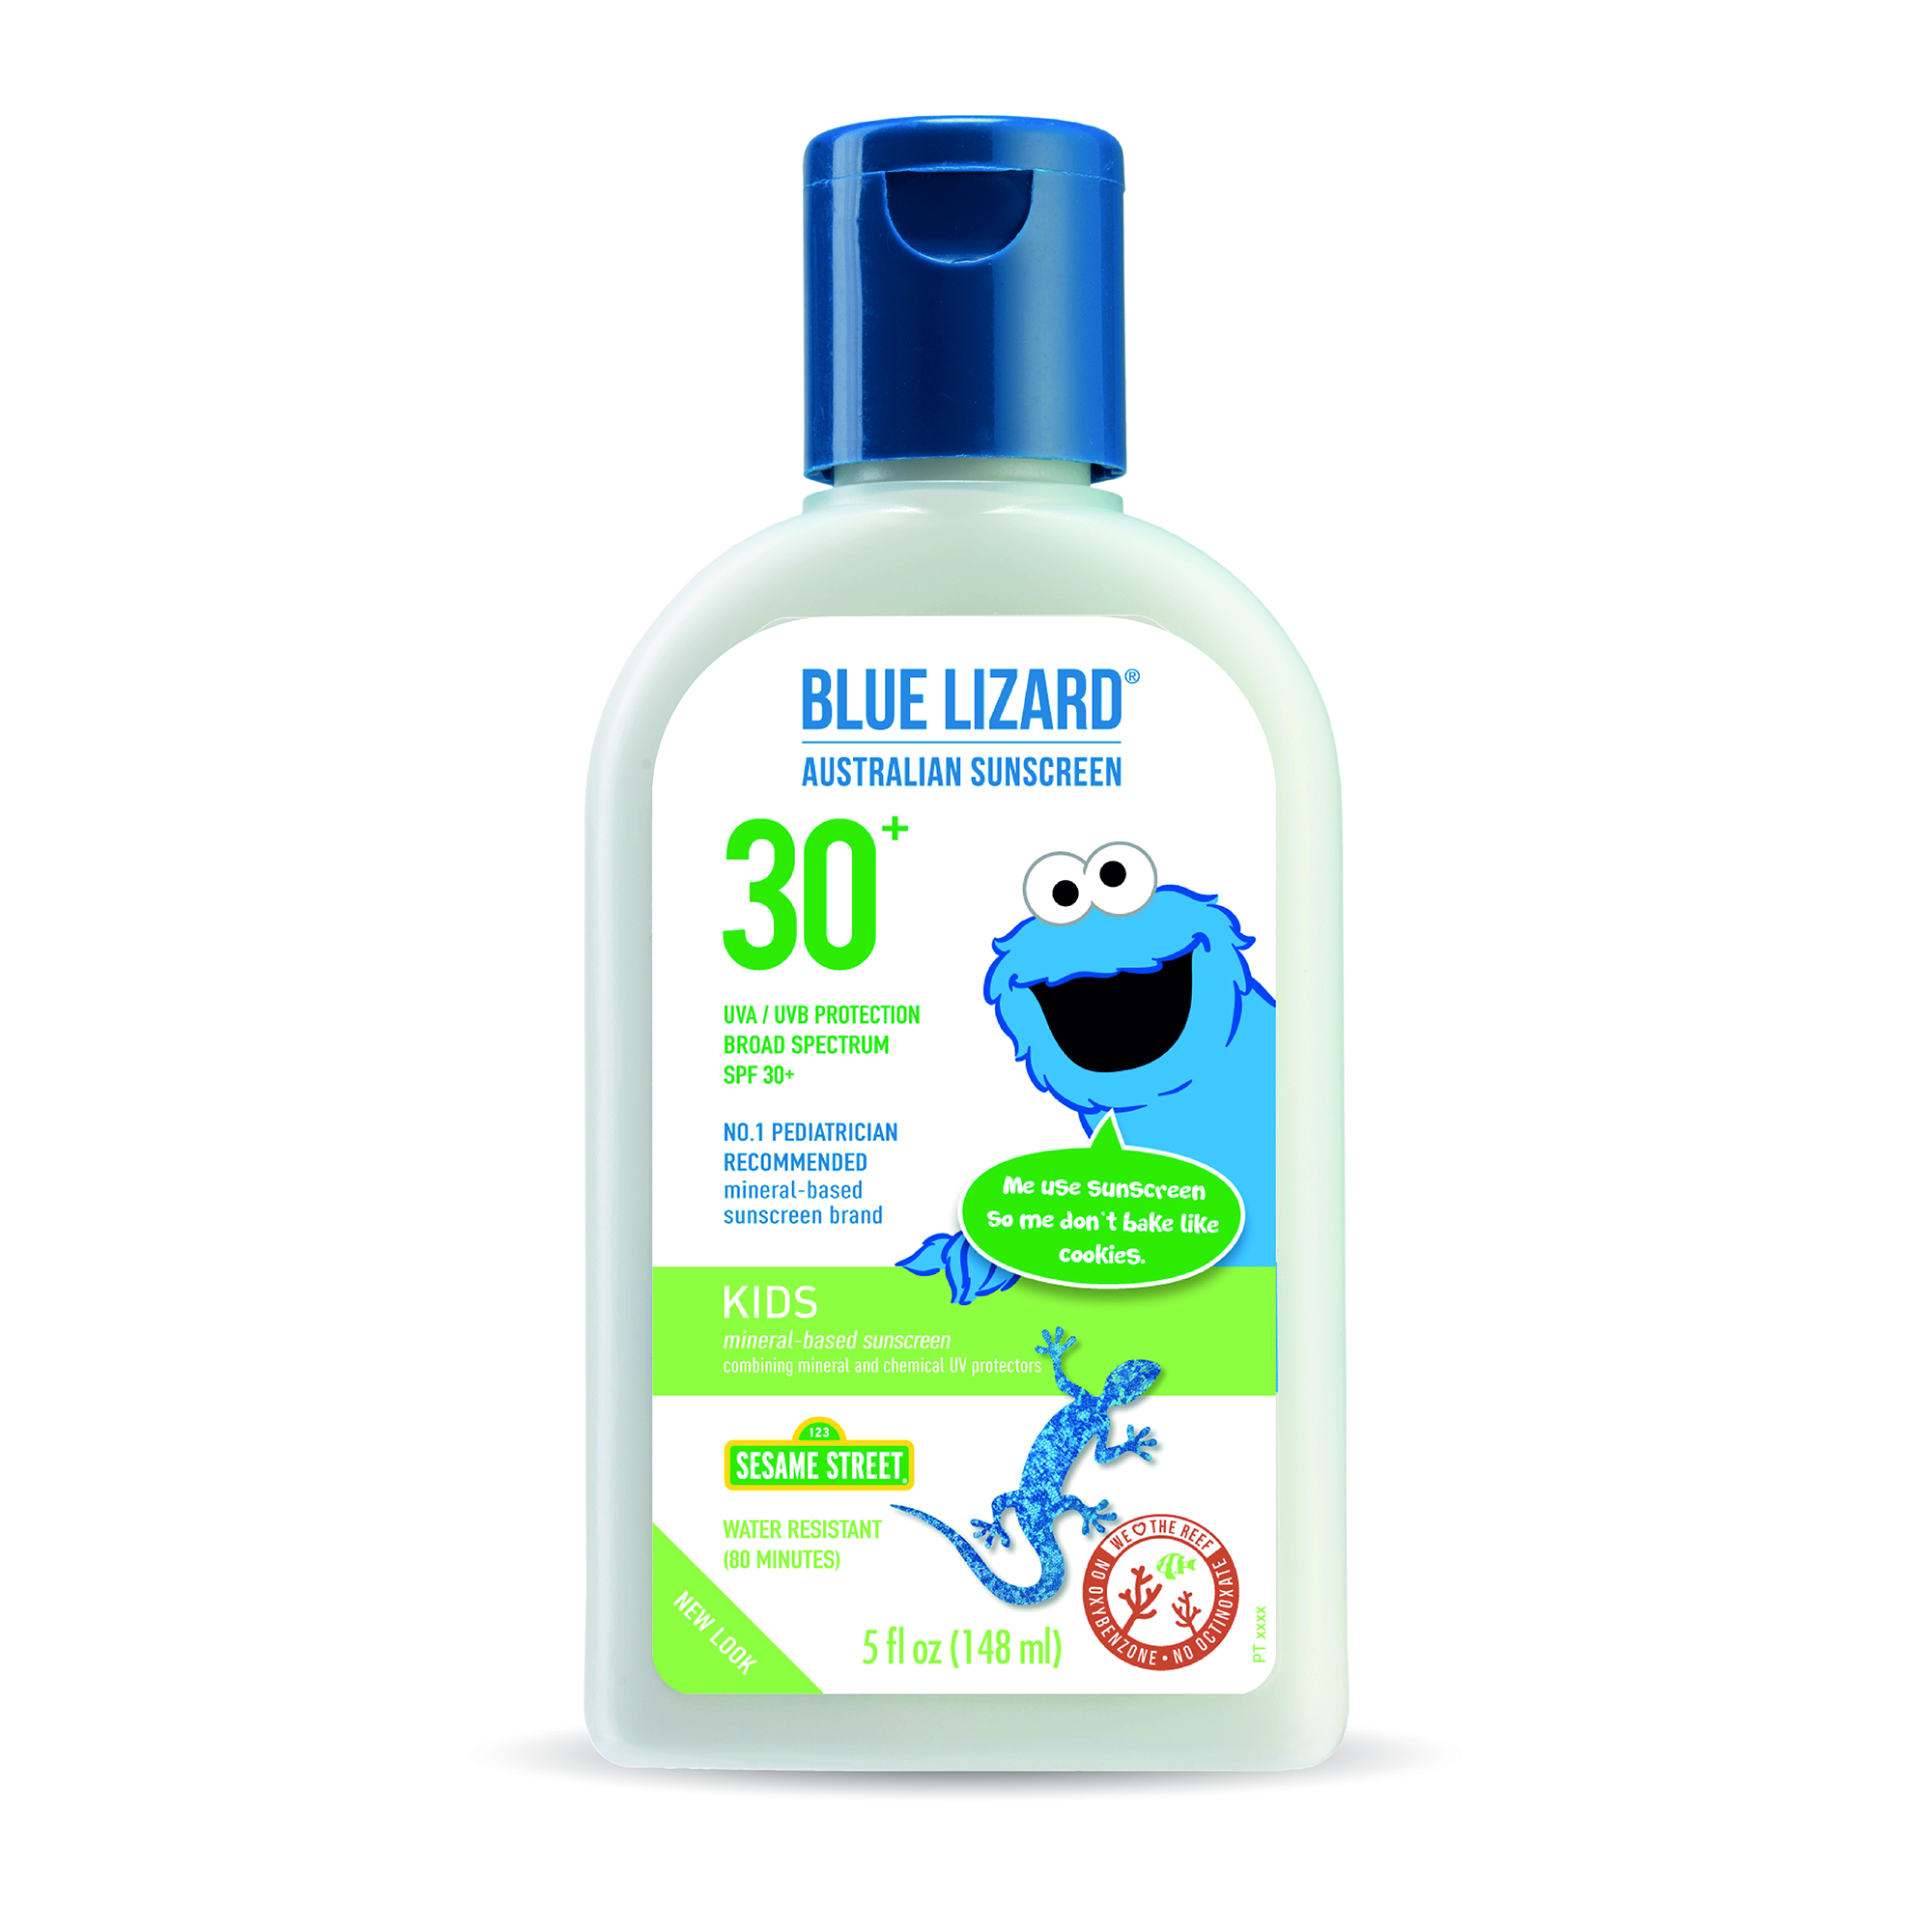 Blue Lizard Australian Sunscreen Partners with Sesame Workshop, Boston Red Sox image